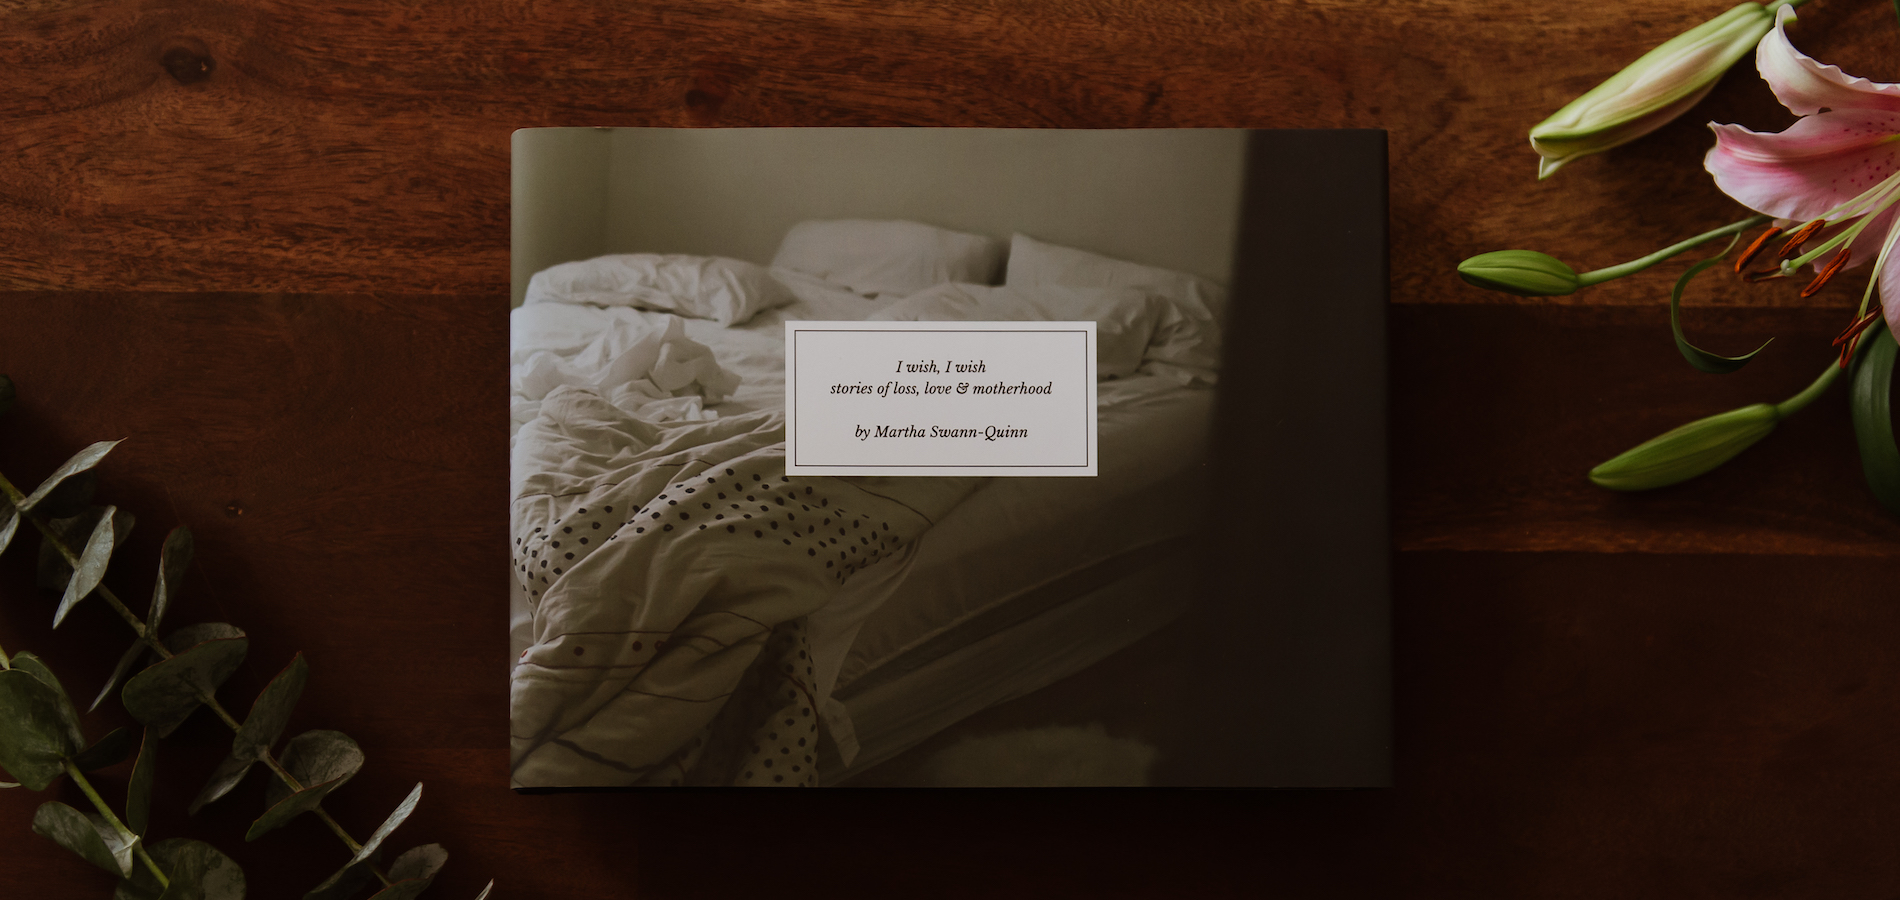 Artifact Uprising Hardcover Photo Book on wooden surface next to pink lily and eucalyptus